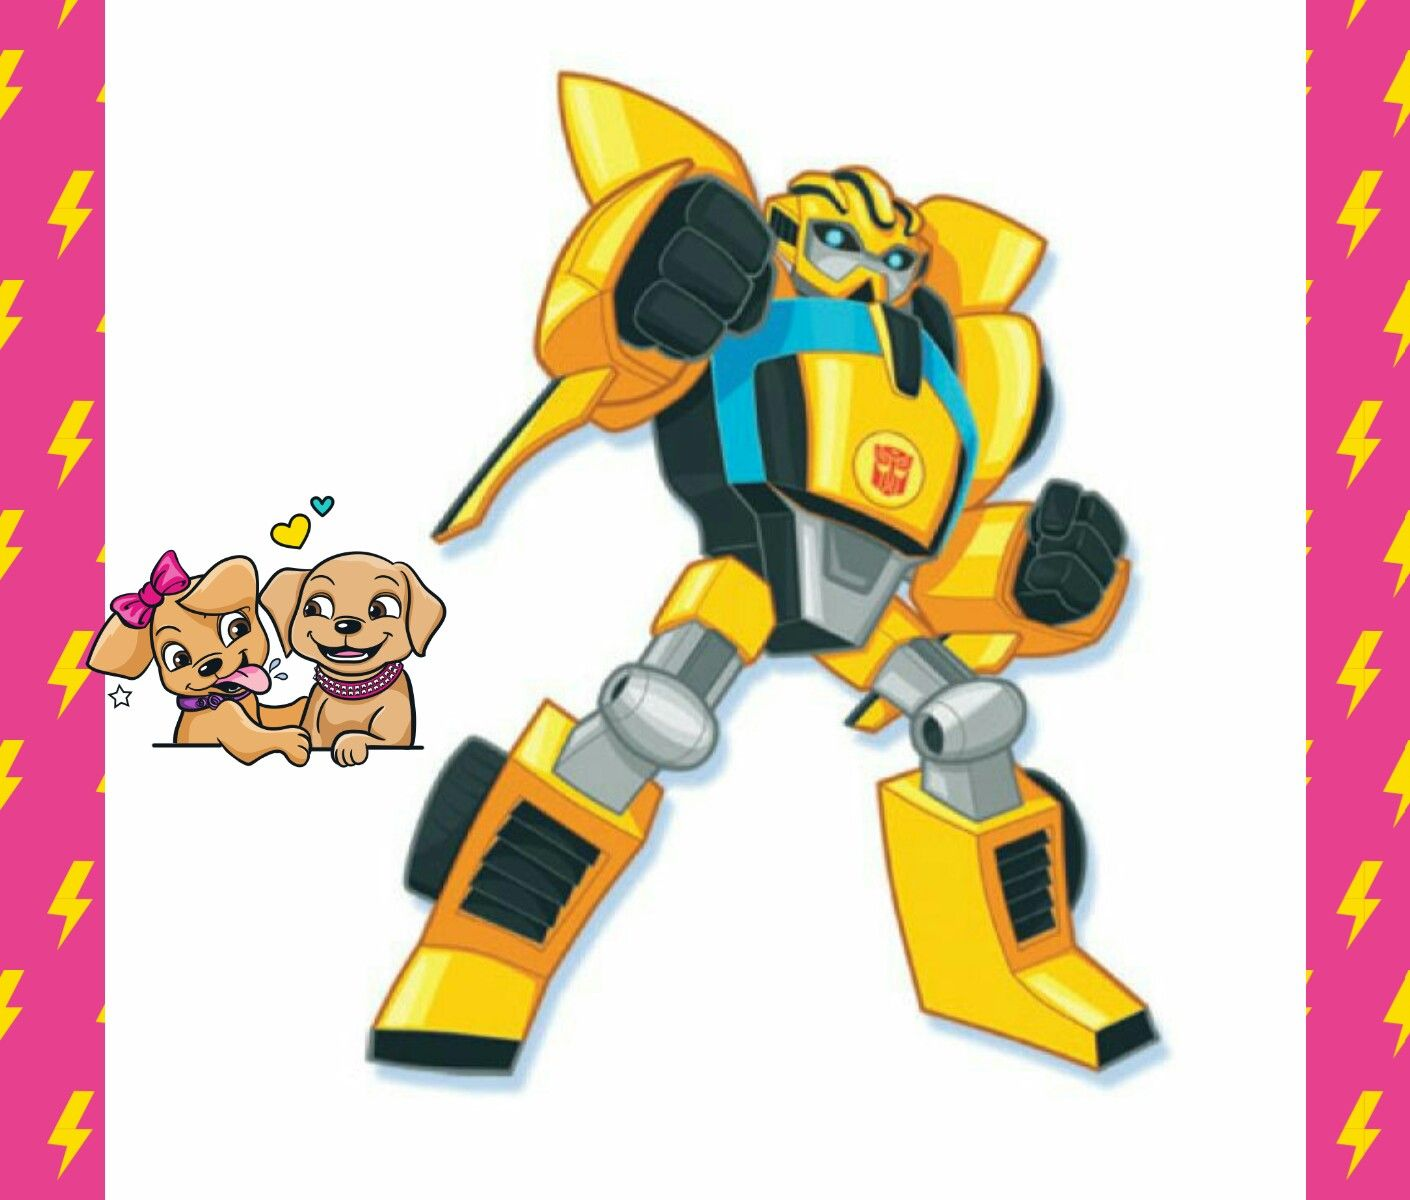 Pin By Heat Wave Chase On Heatwave Chase Bumbble Bee Transformers Rescue Bots Birthday Rescue Bots Birthday Party Rescue Bots Party